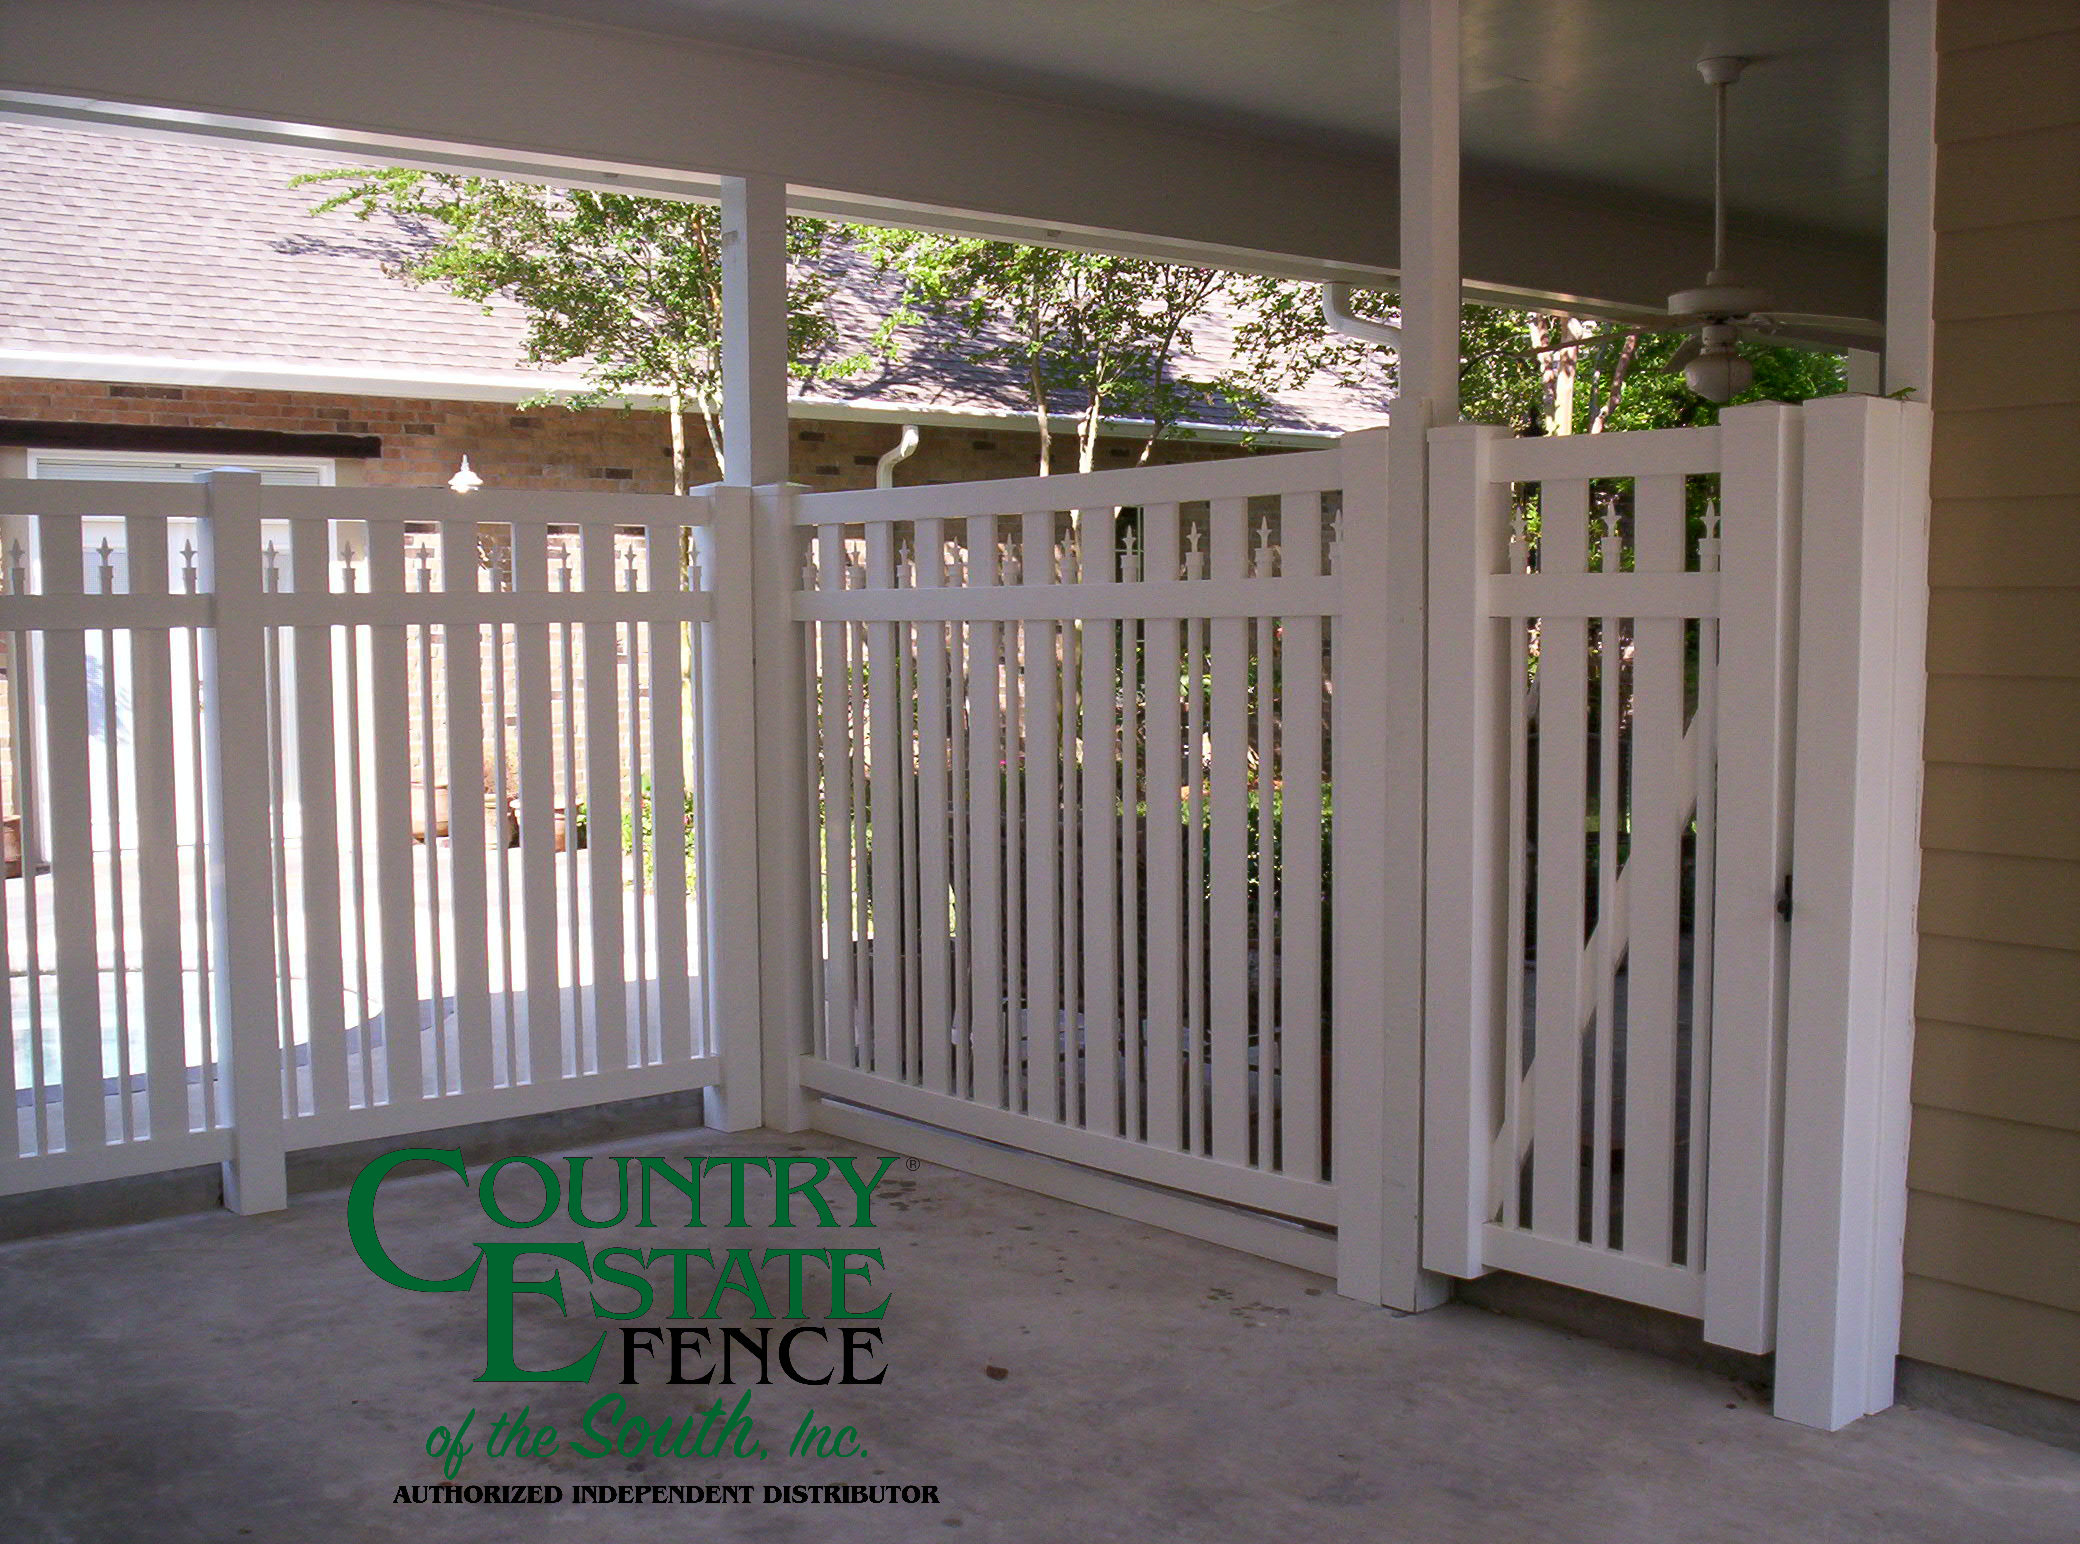 Carport Enclosures - Country Estate Fence of The South - Vinyl & Aluminum Fencing